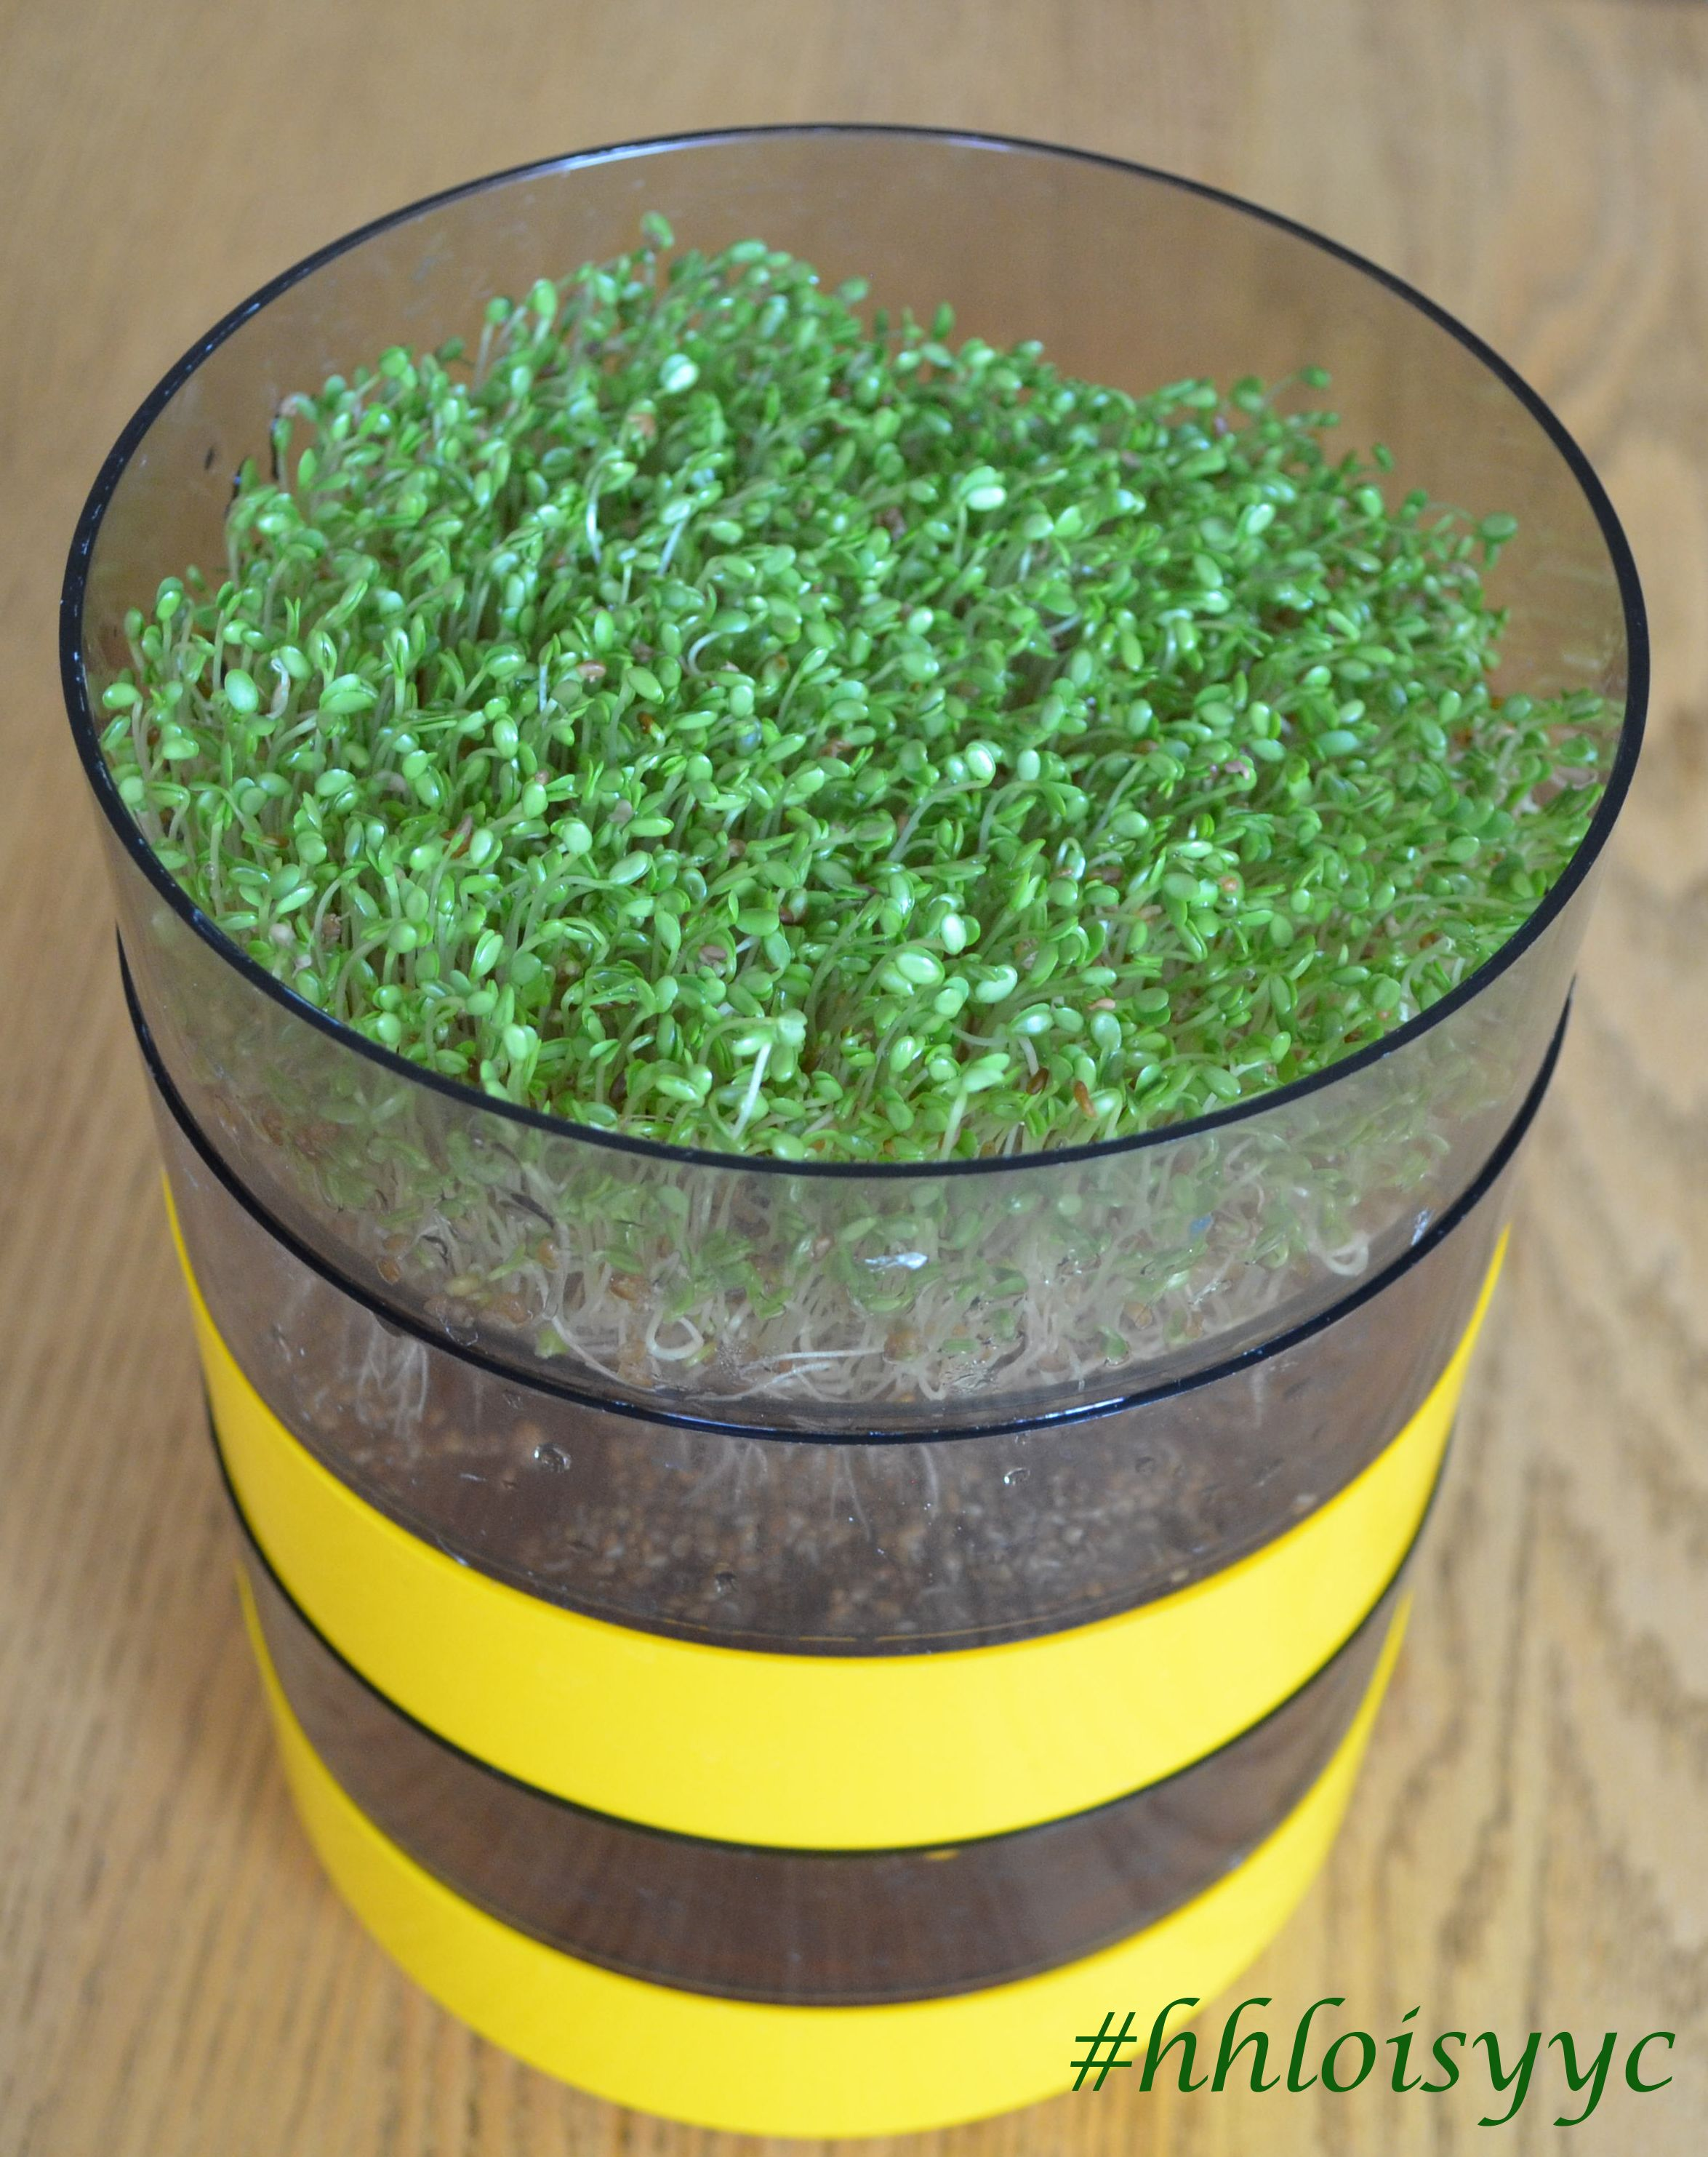 SPROUTS are LIVE FOOD! read about the benefits of sprouts